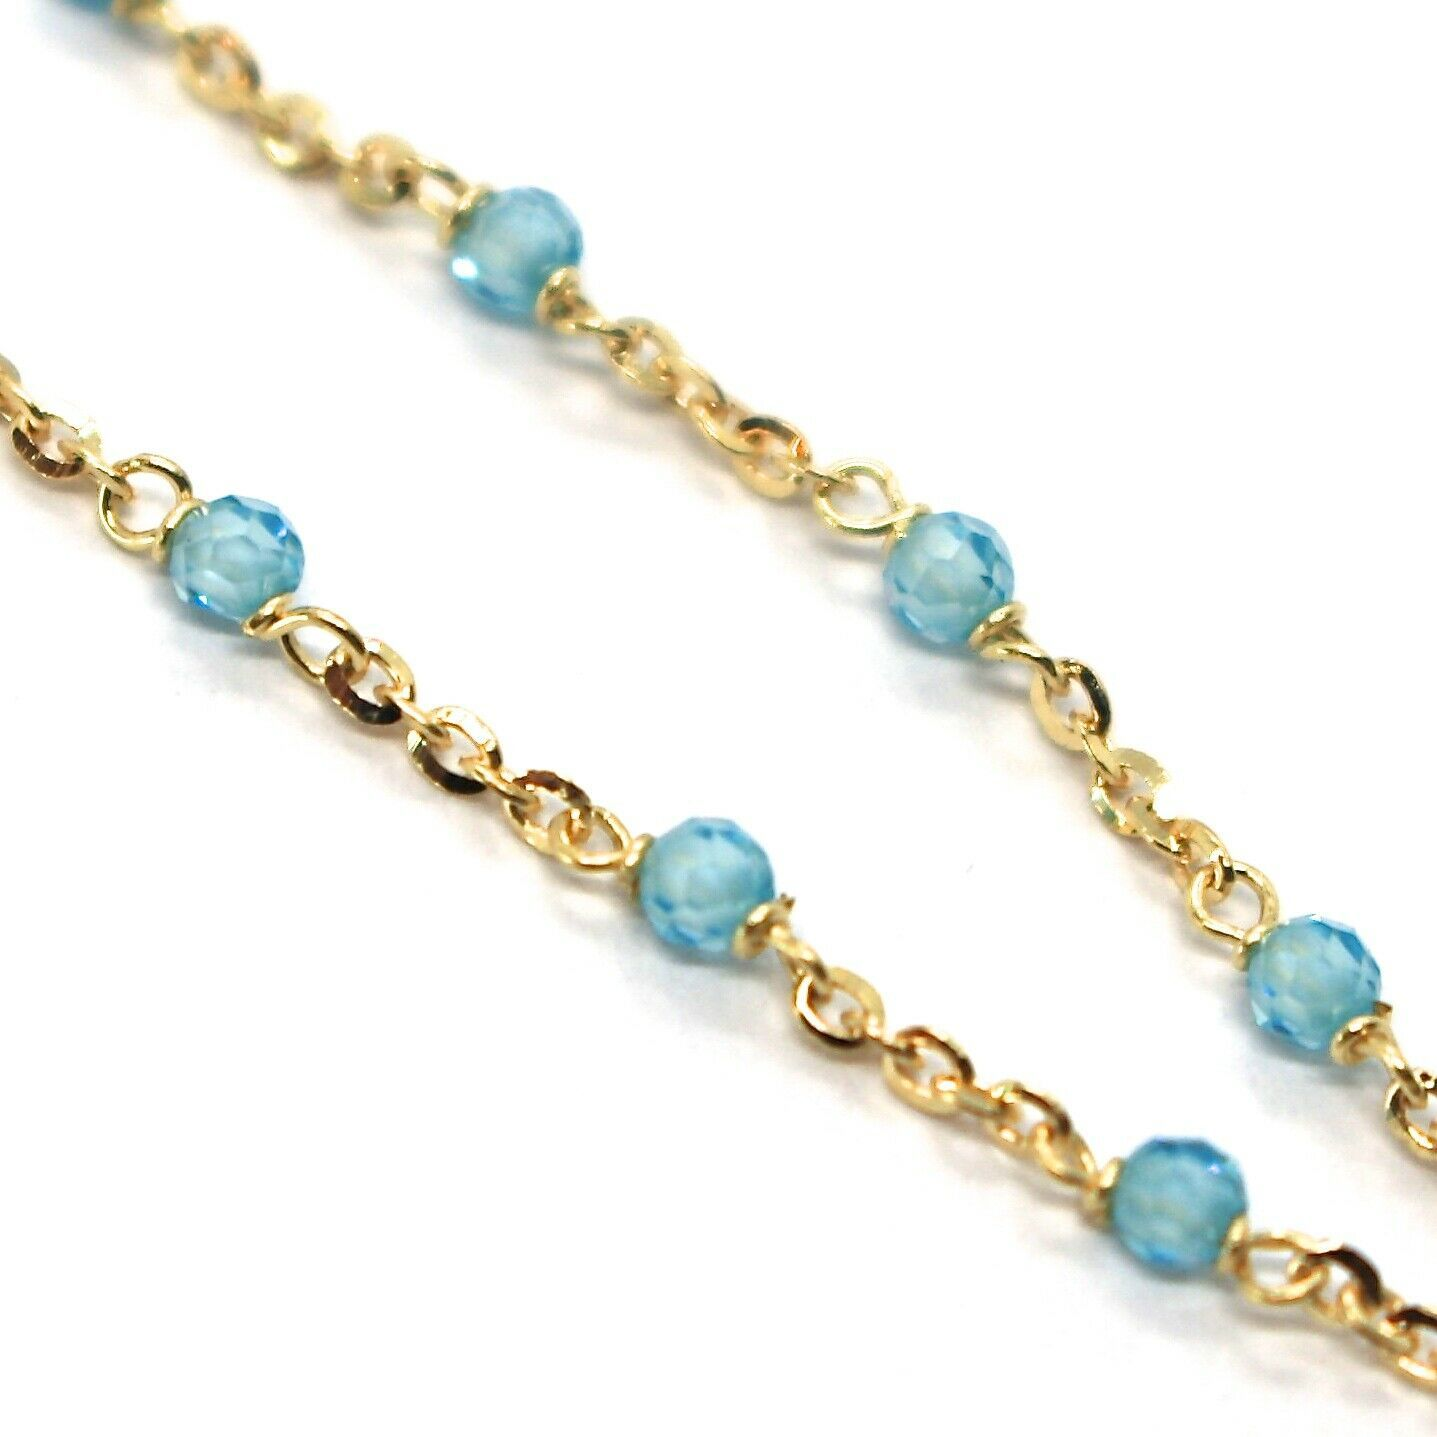 18K YELLOW GOLD BRACELET, AZURE FACETED CUBIC ZIRCONIA, ROLO CHAIN, 6.9 INCHES image 2